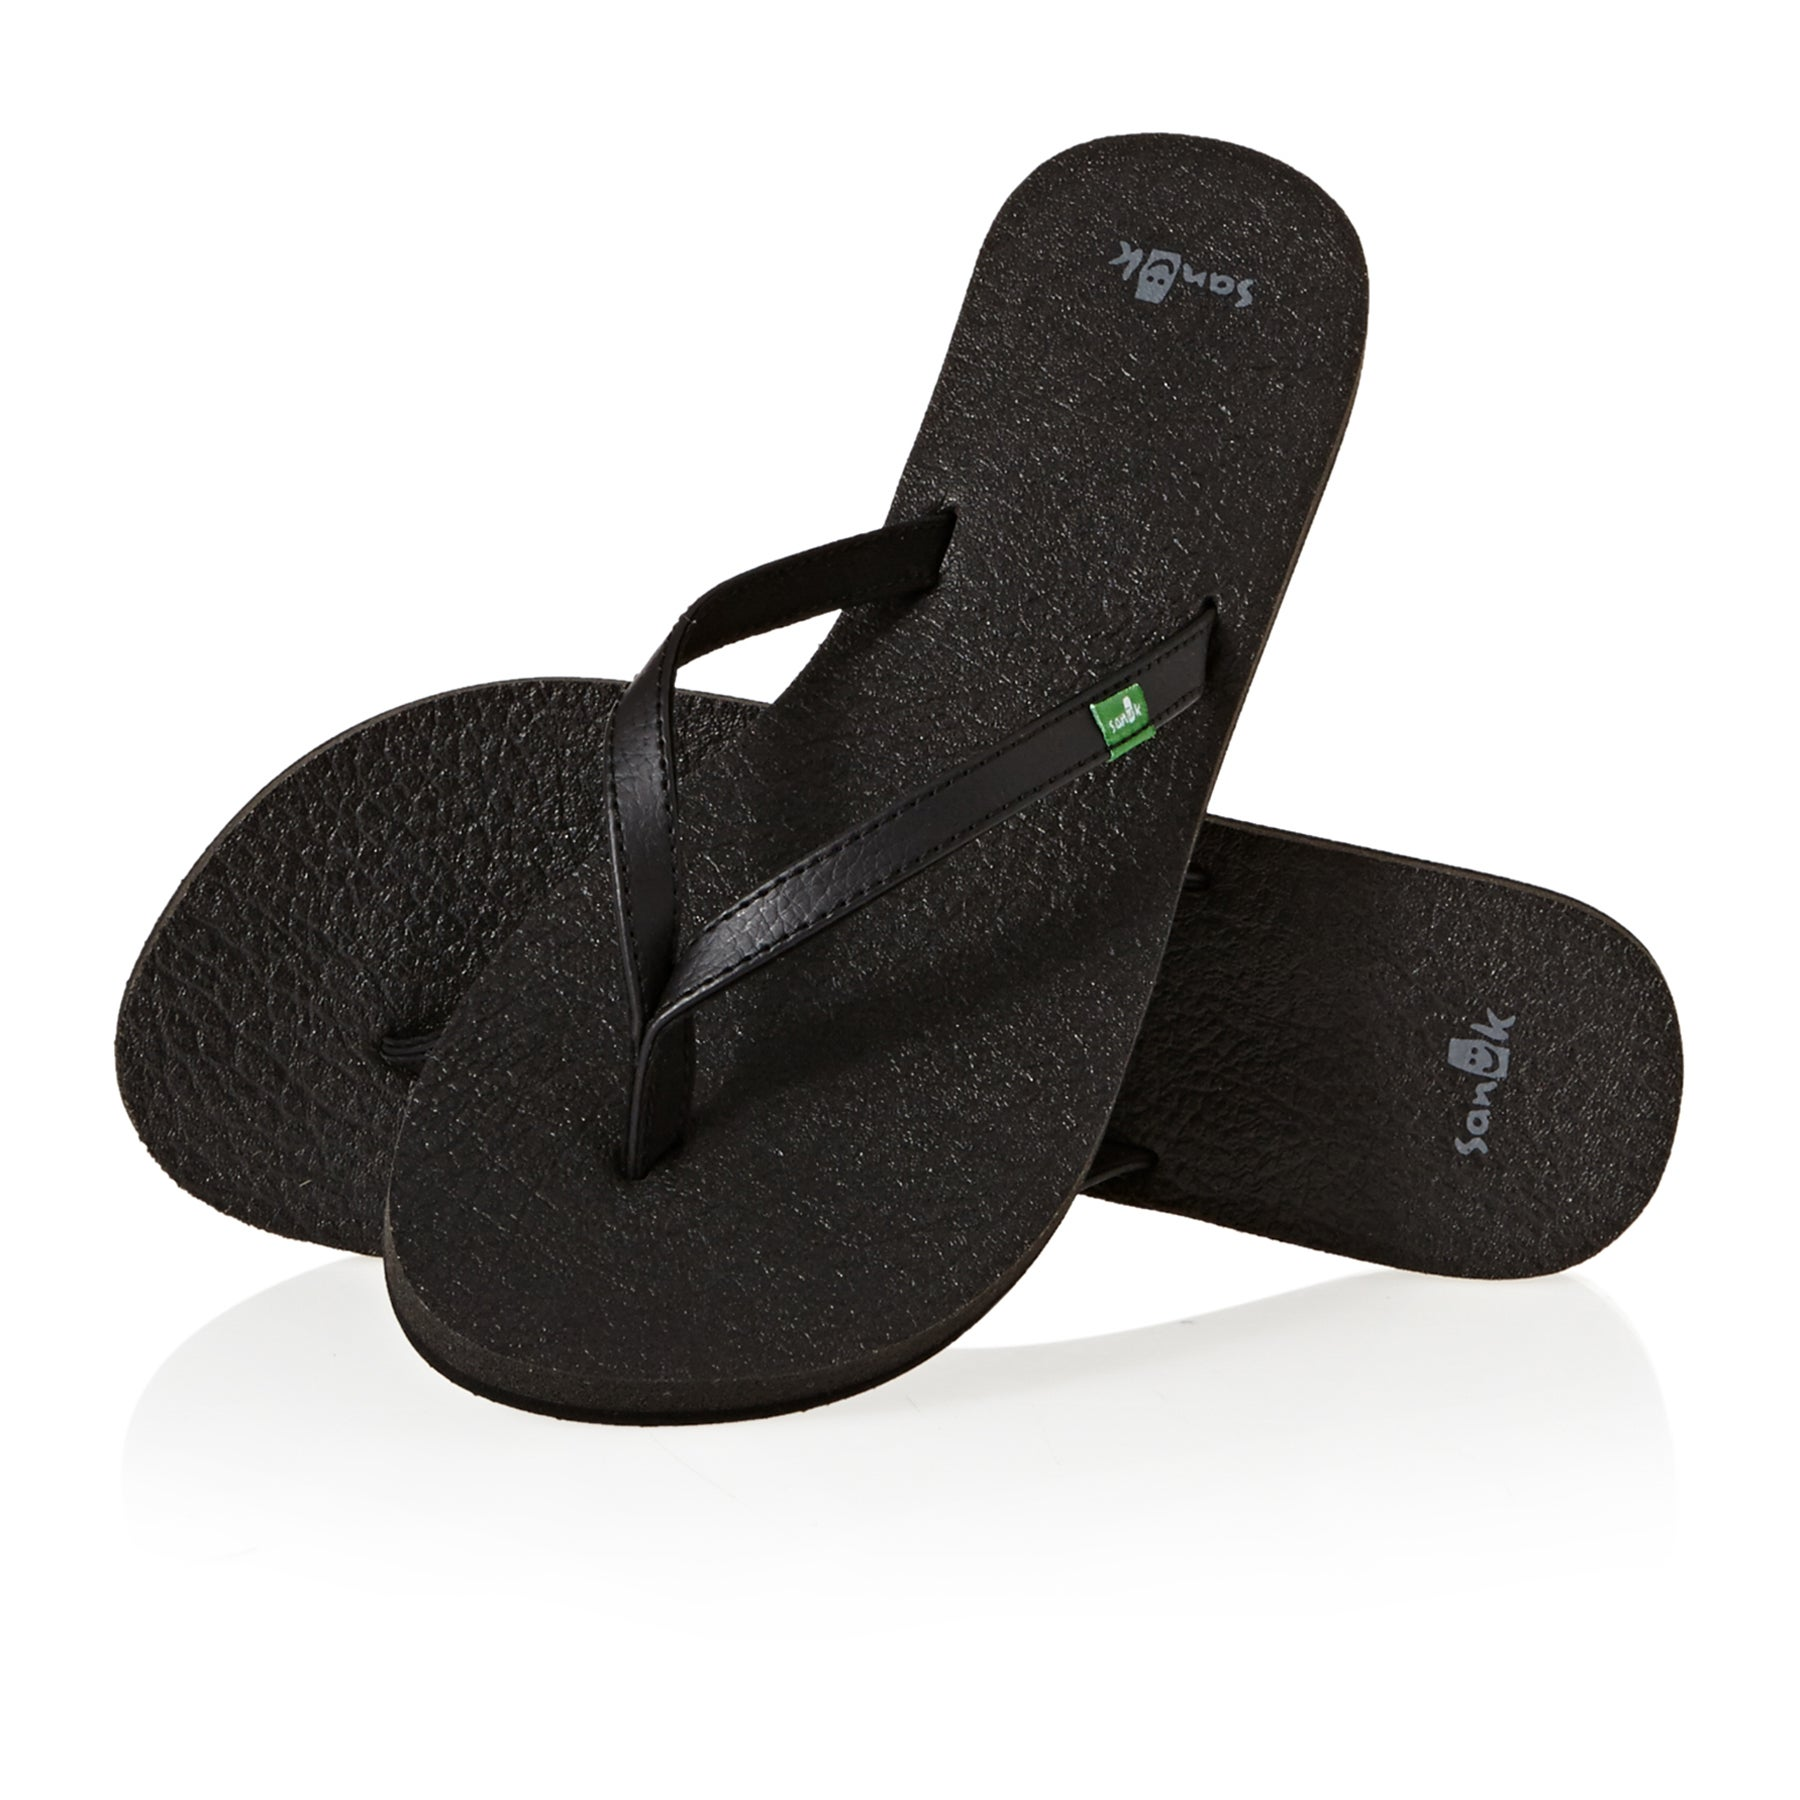 Sanuk W Yoga Spree 4 Womens Sandals - Black